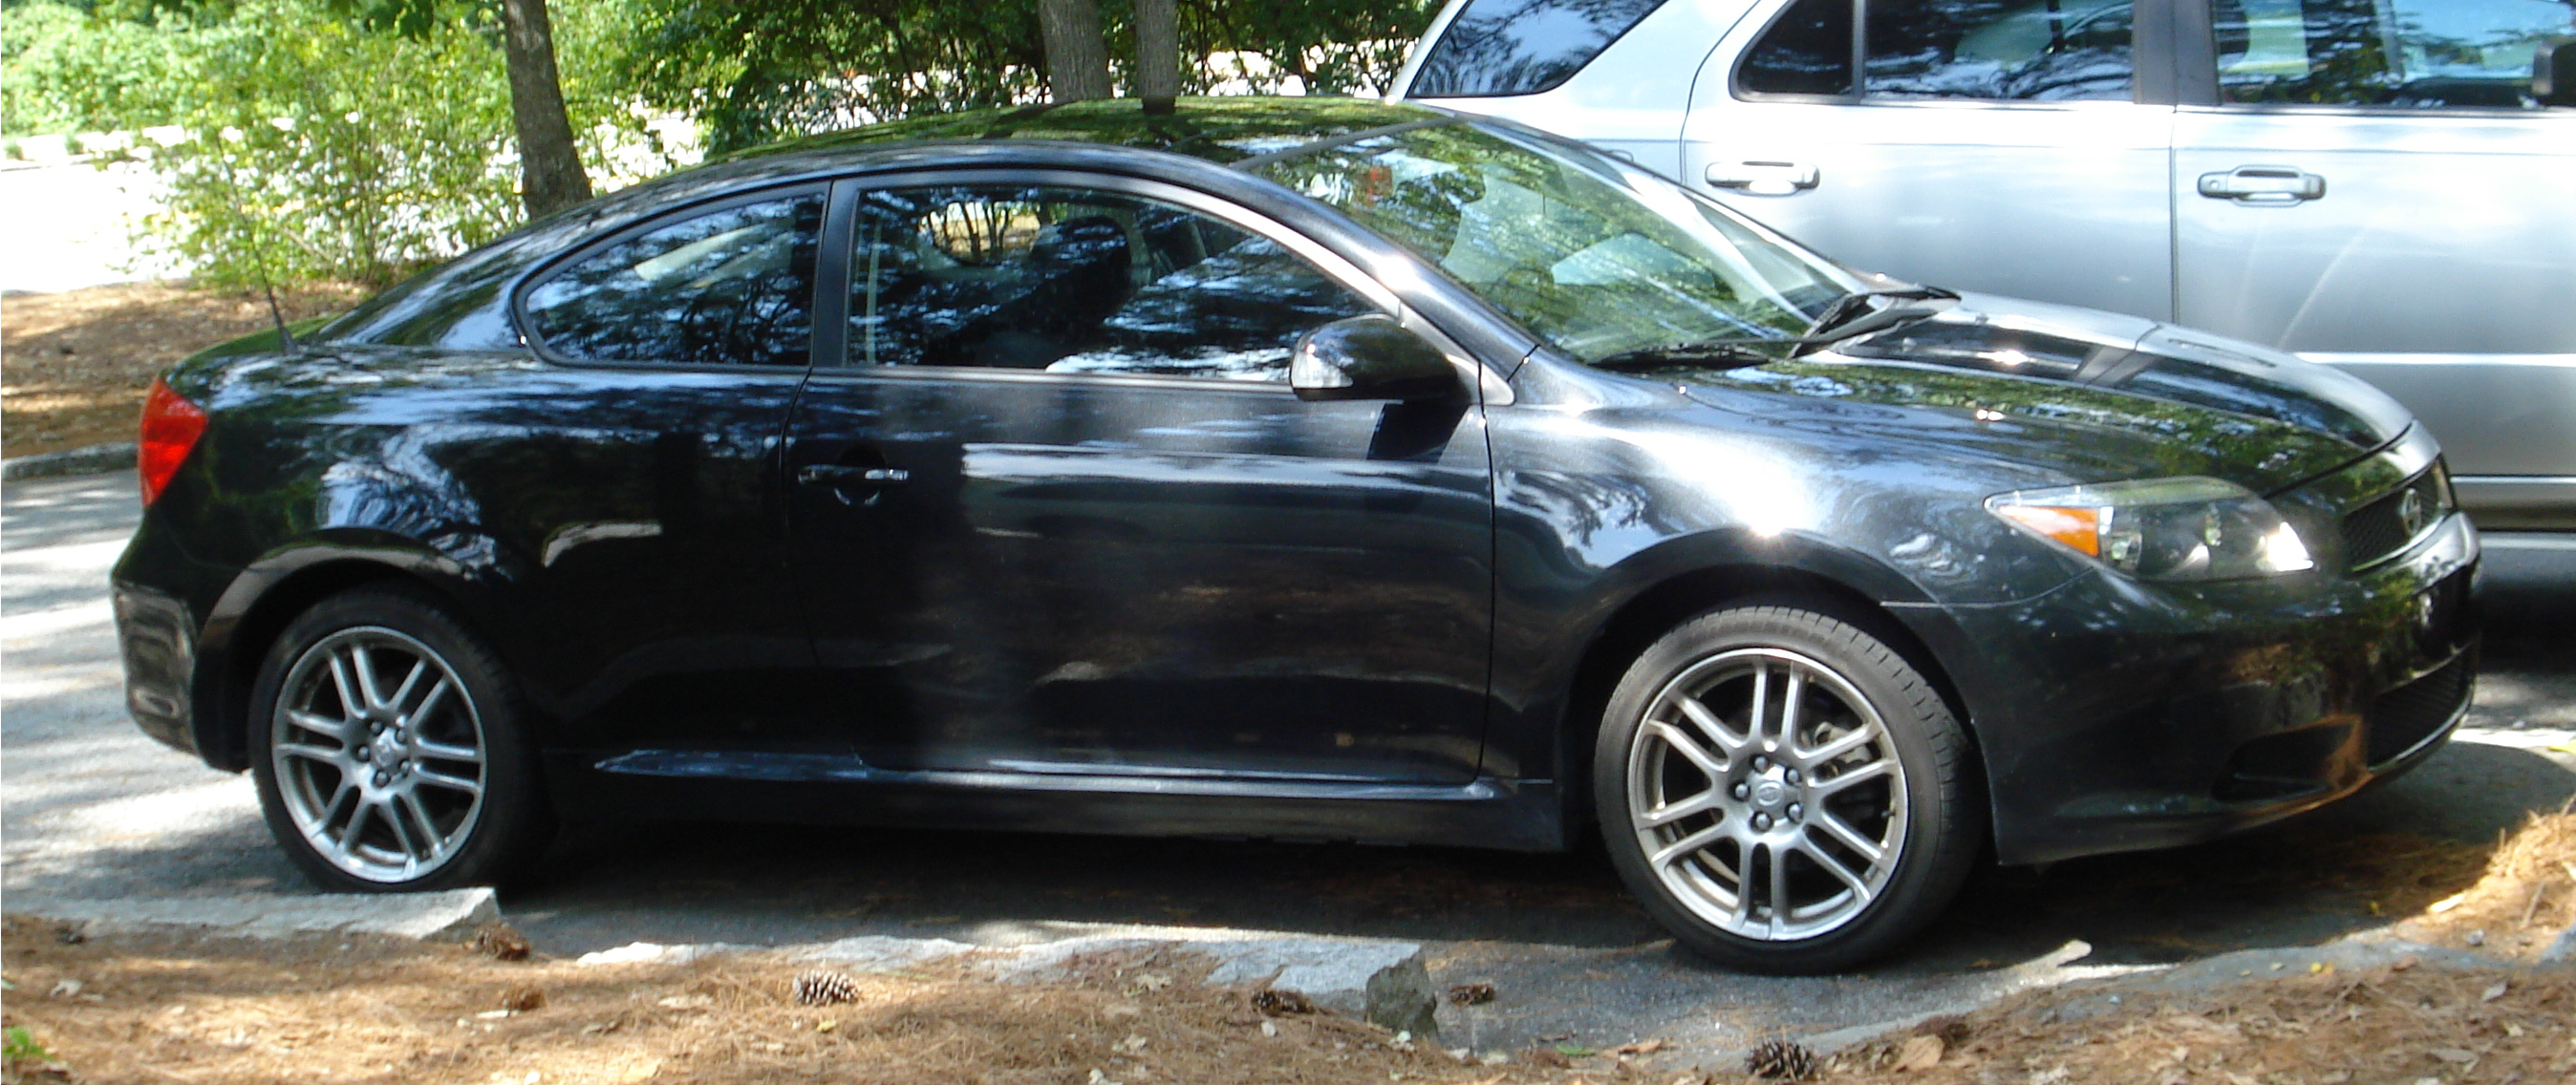 File:2006-scion-tc.png - Wikimedia Commons